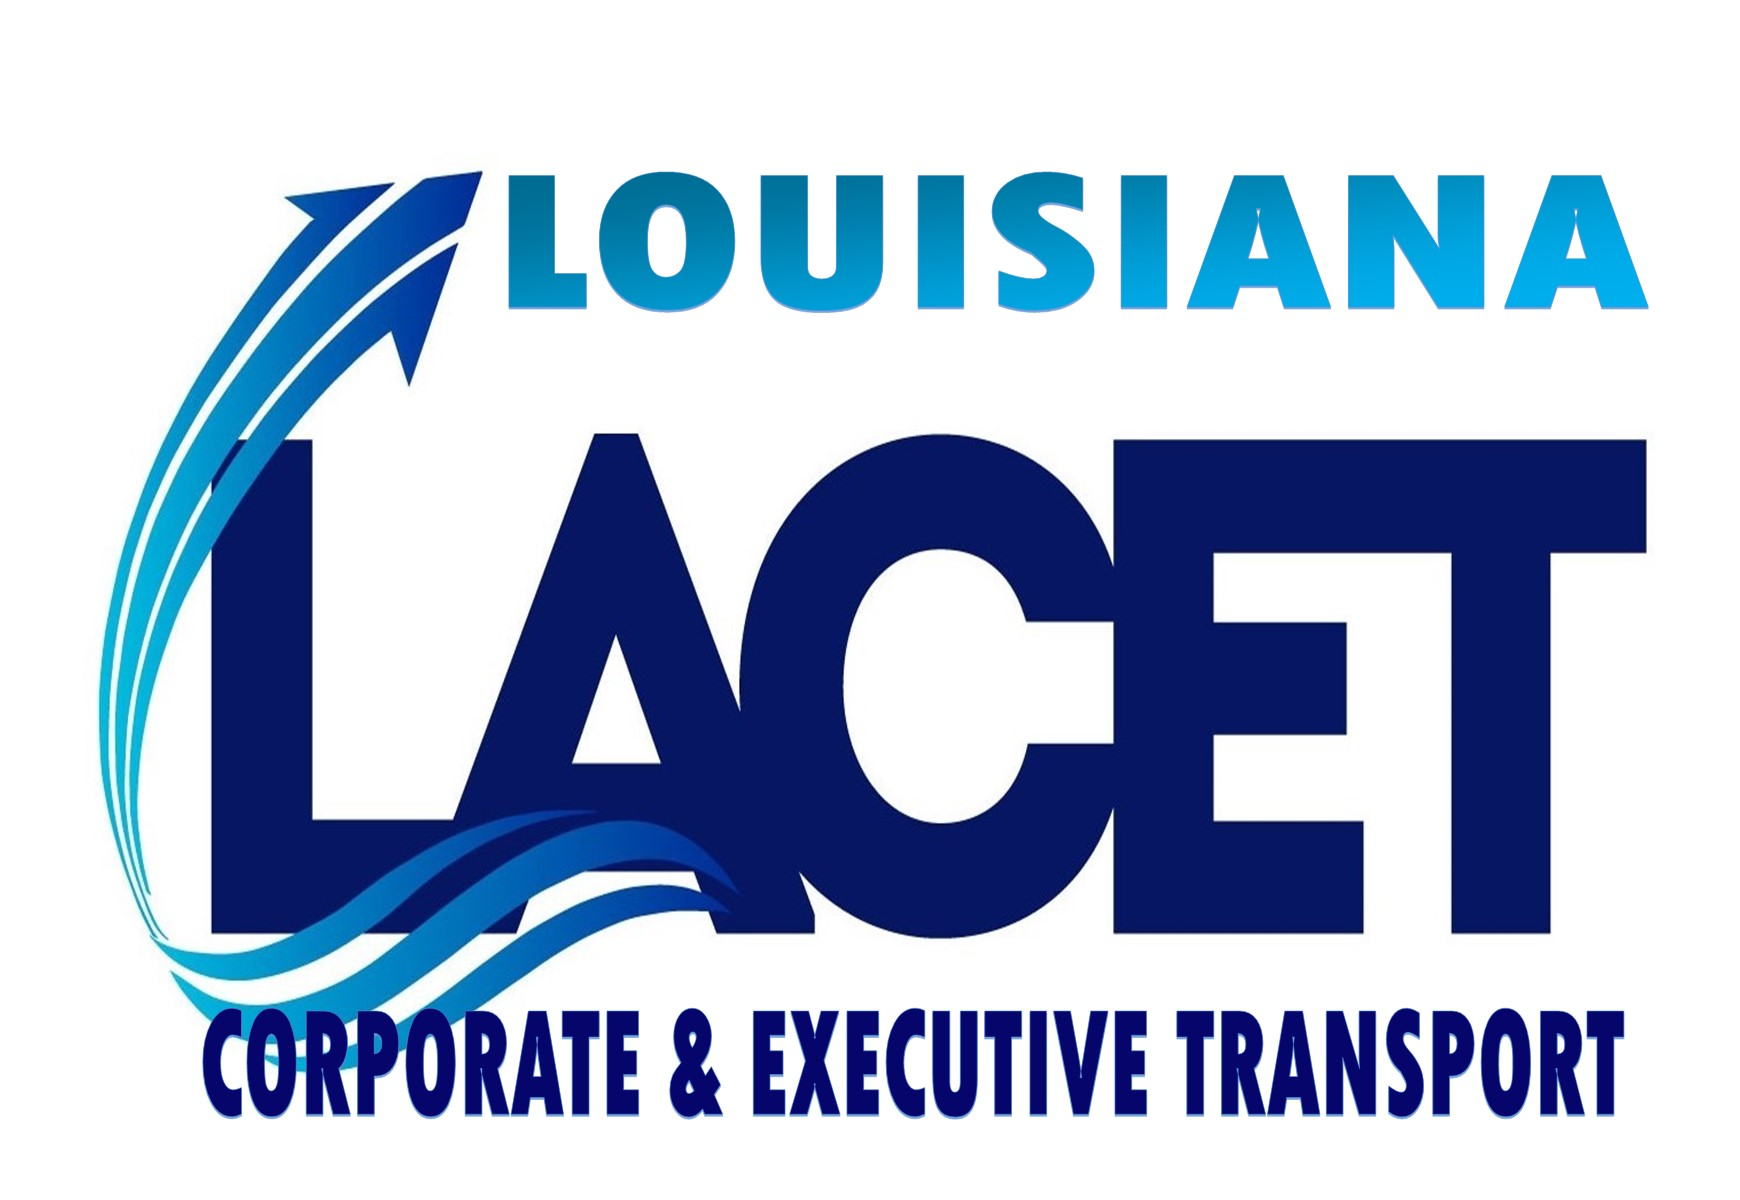 LA Corporate & Executive Transport, LLC